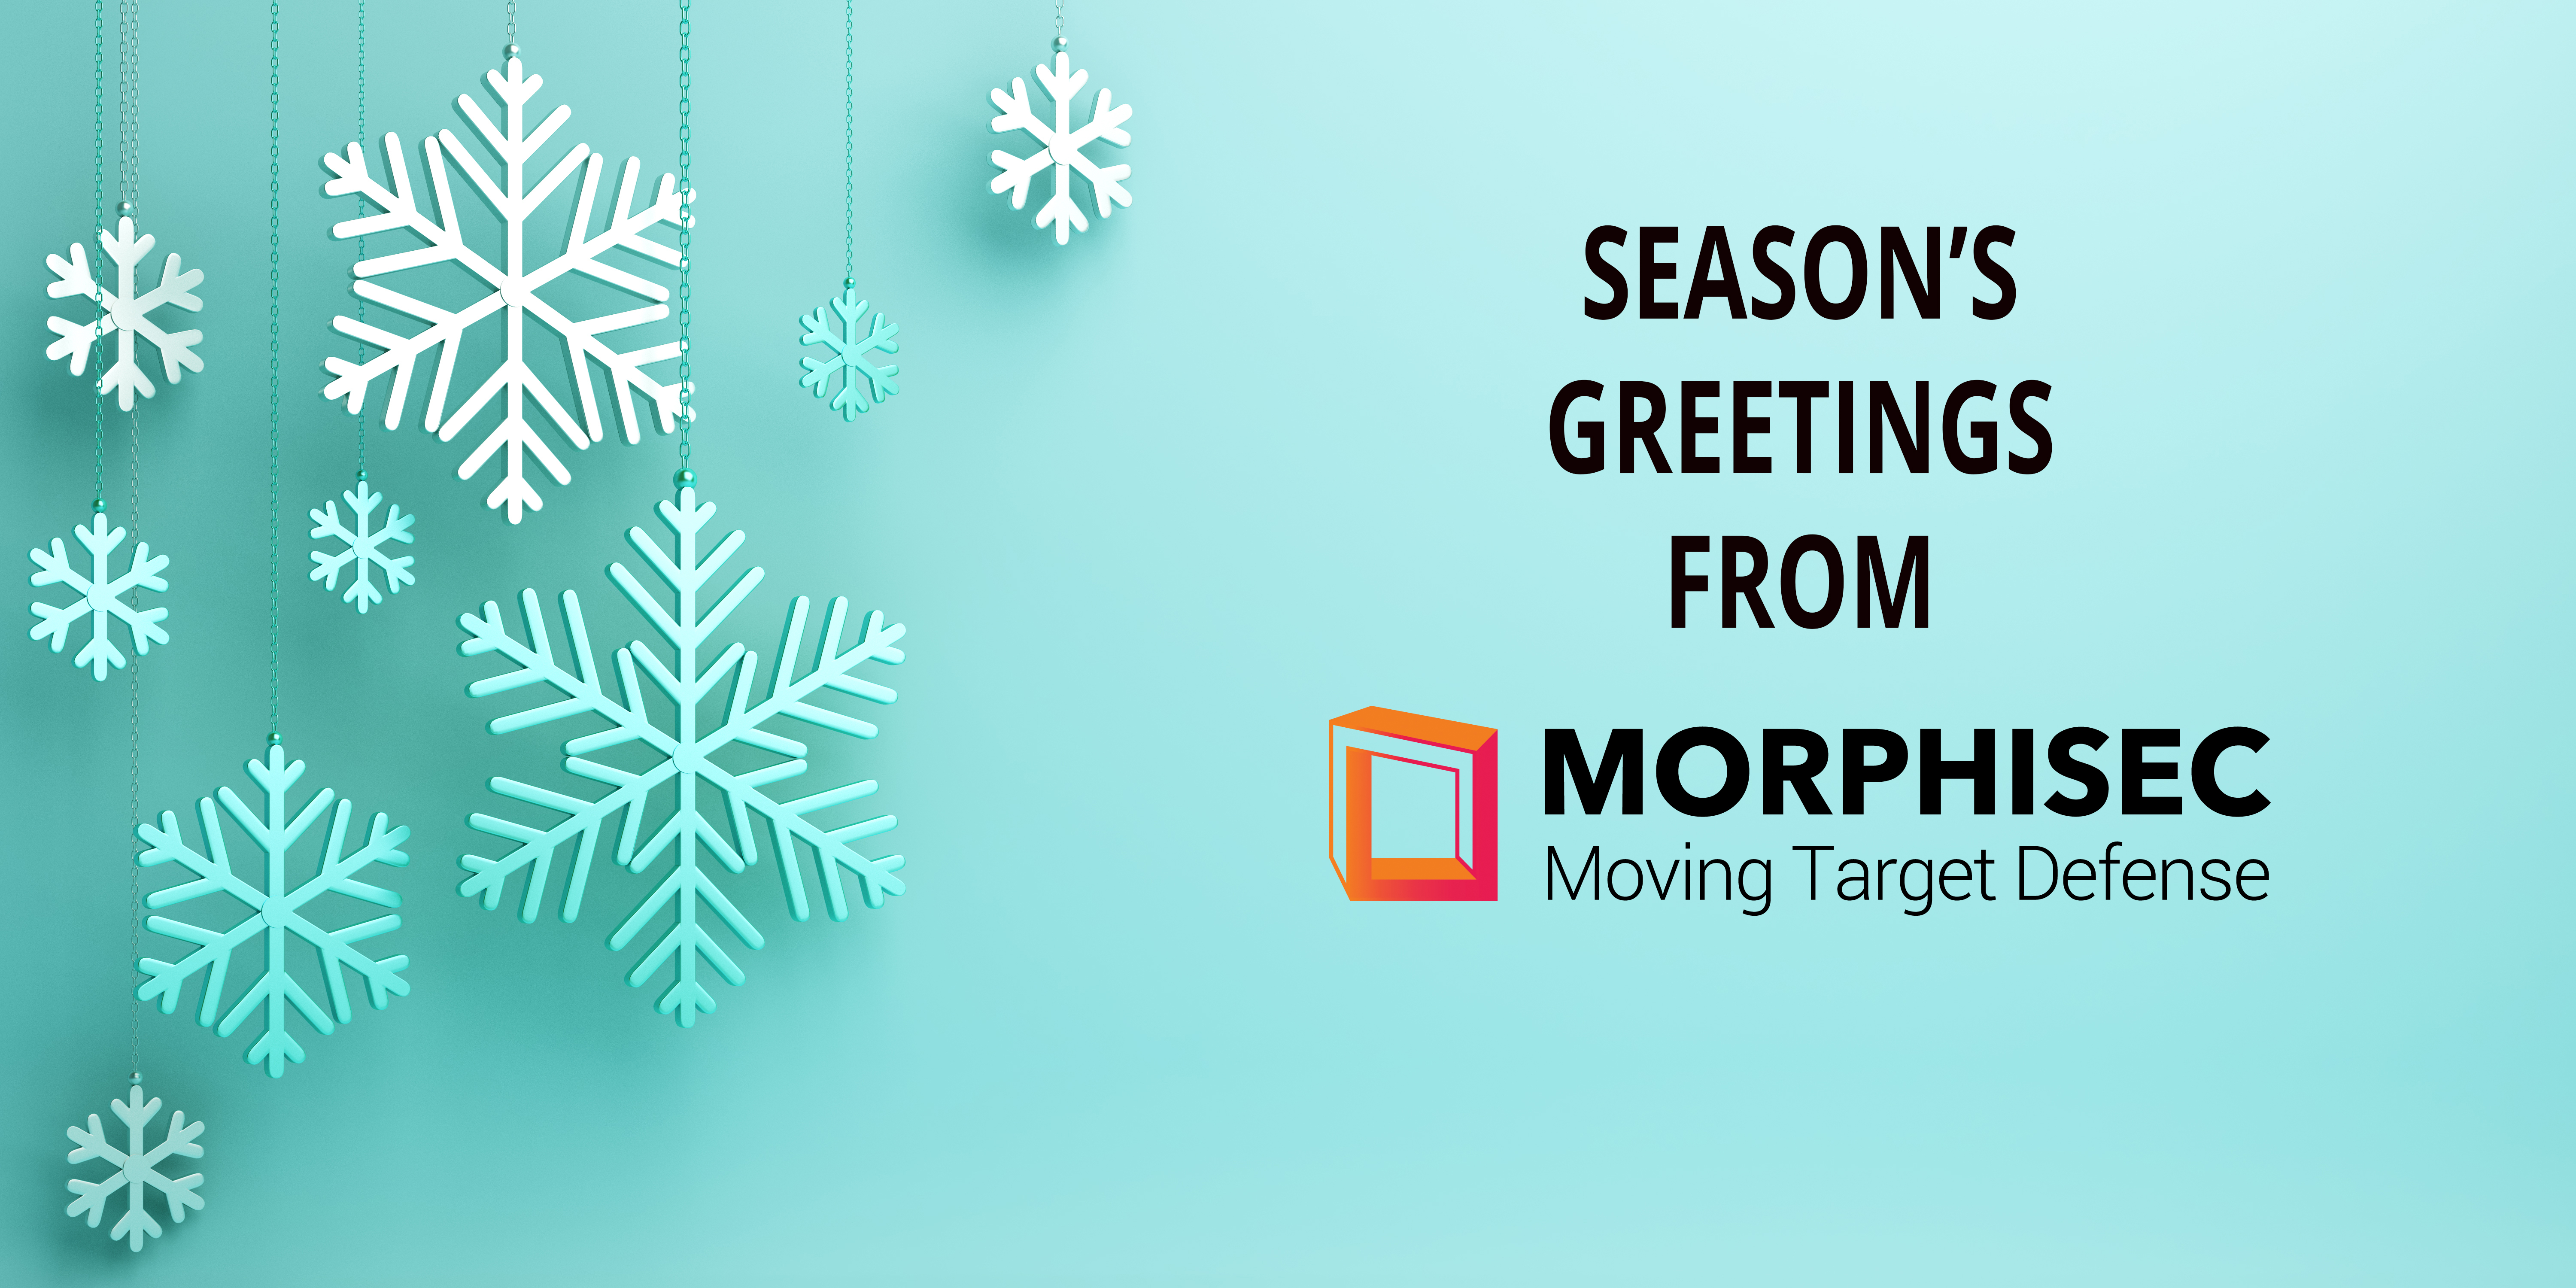 Morphisec Holiday Post 2019-12 v2